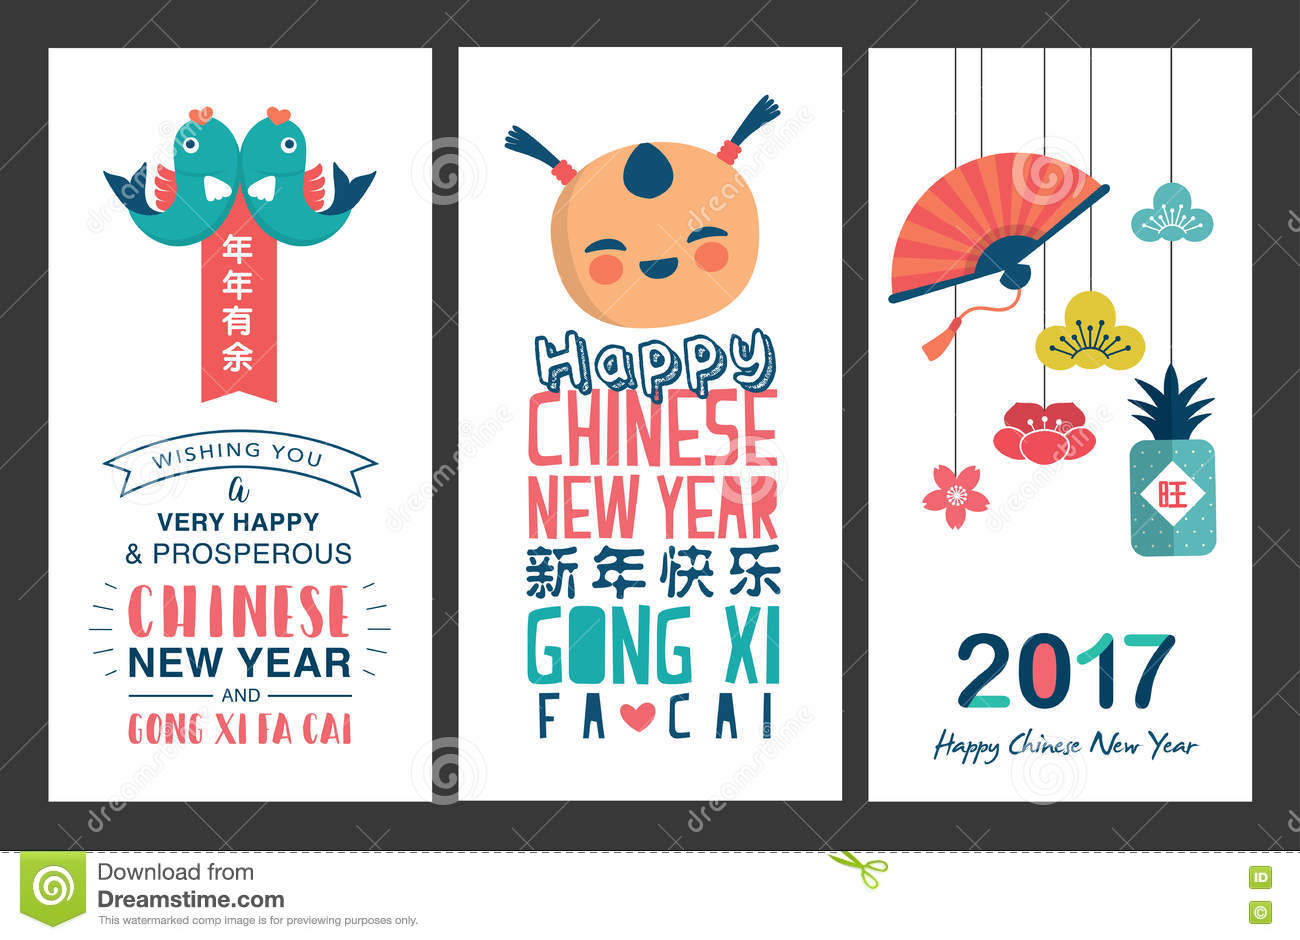 Happy Chinese New Year stock vector. Illustration of elements - 80596210